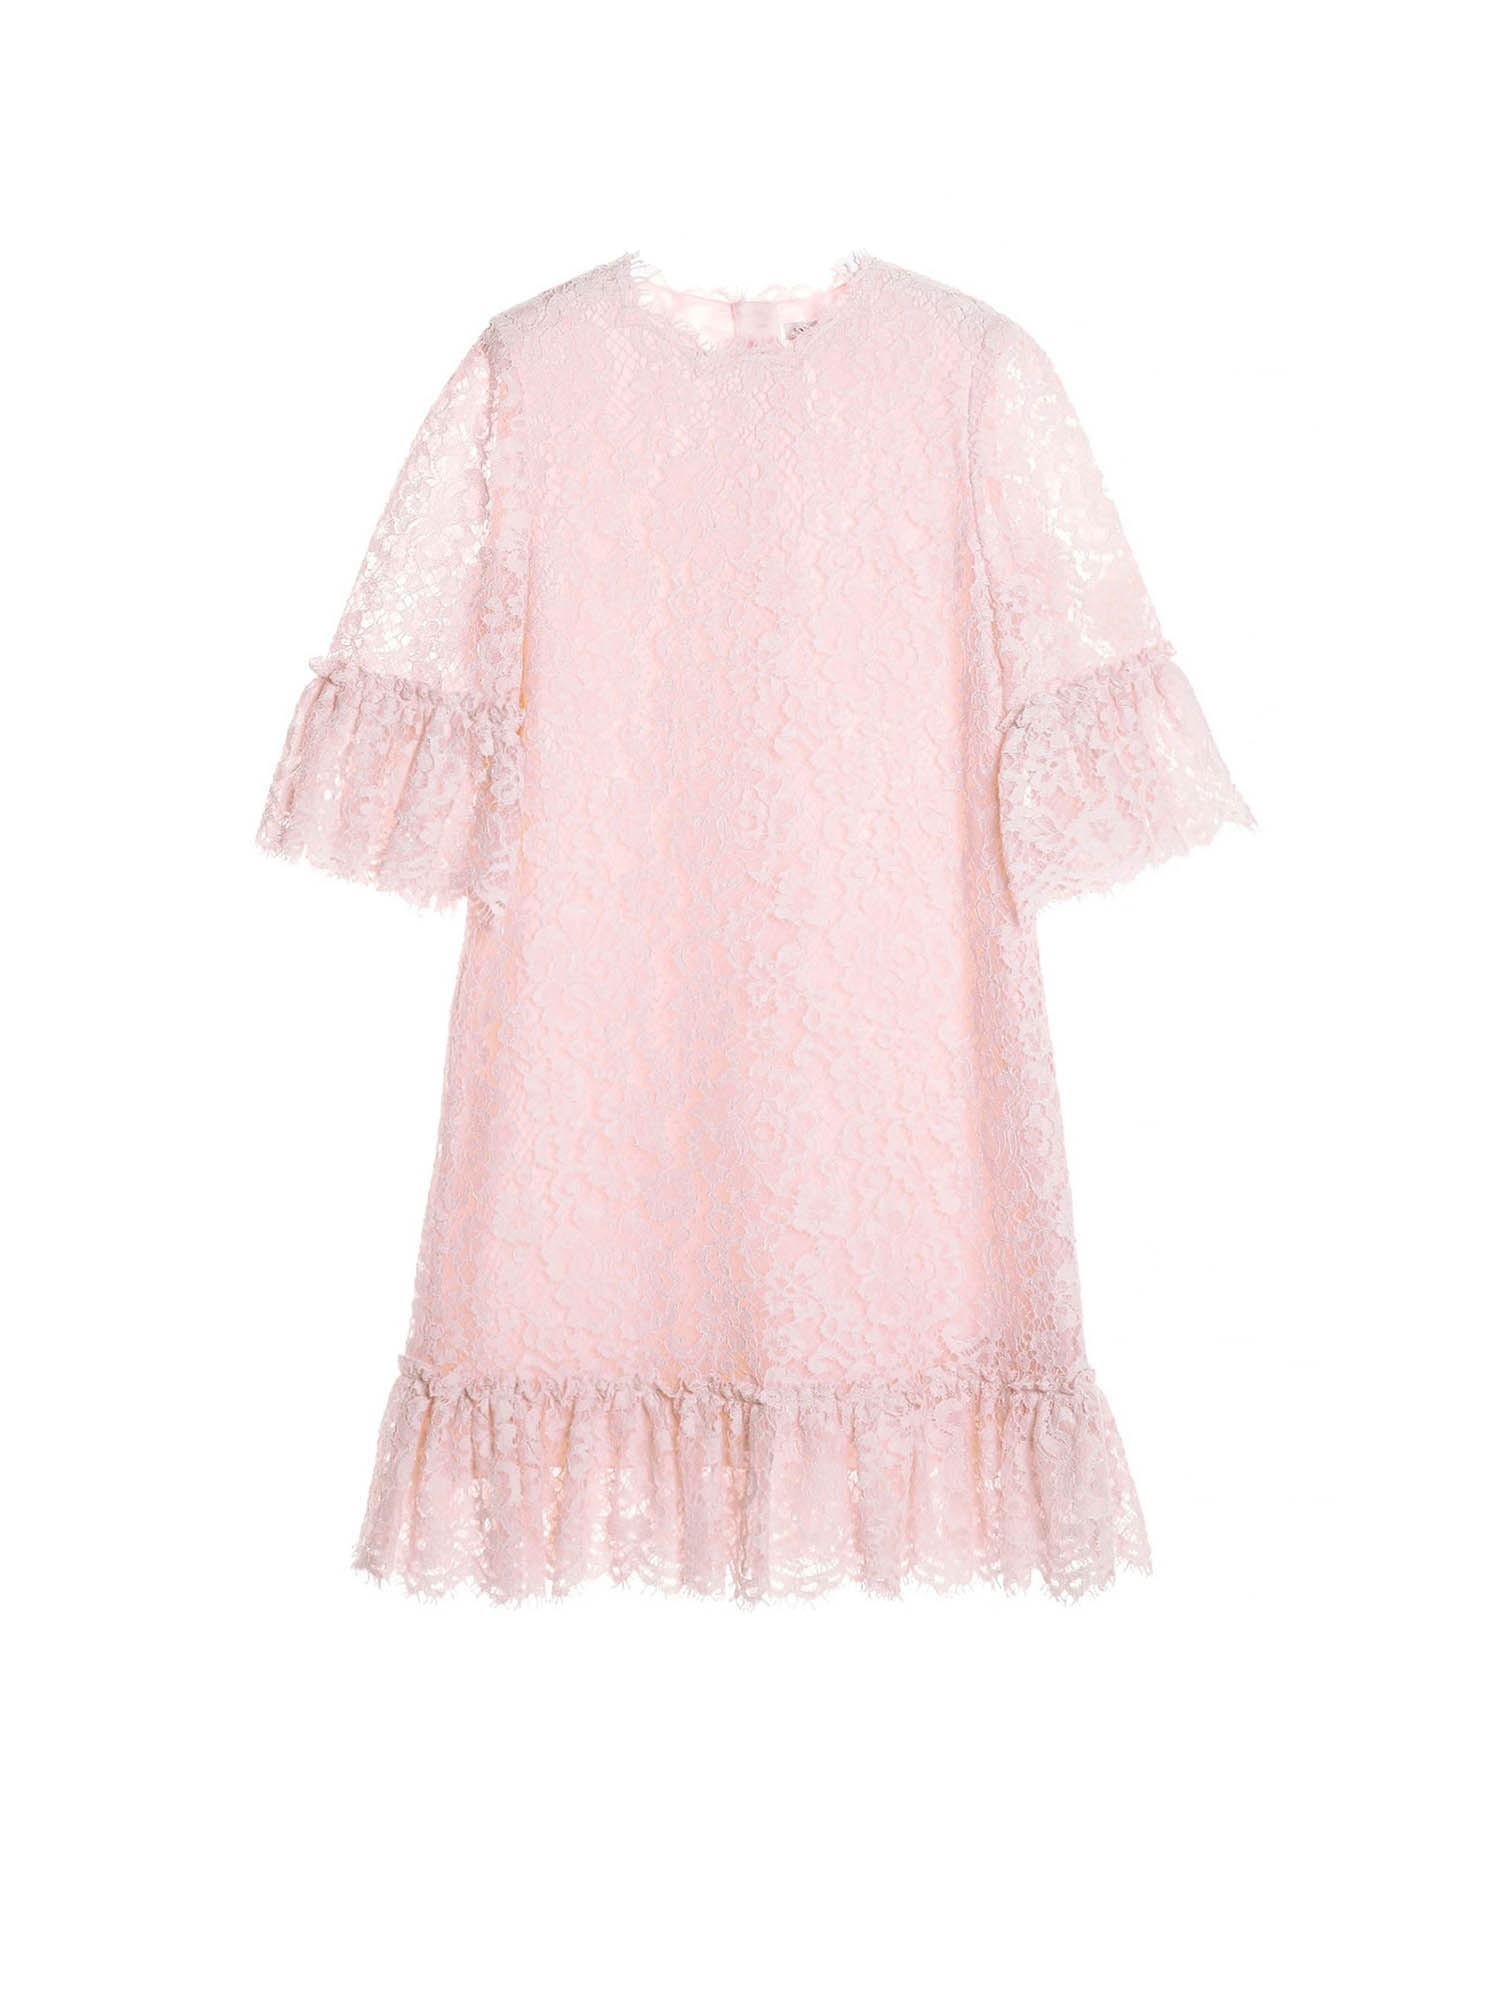 Dolce & Gabbana Jr MIDI DRESS IN LACE IN PINK